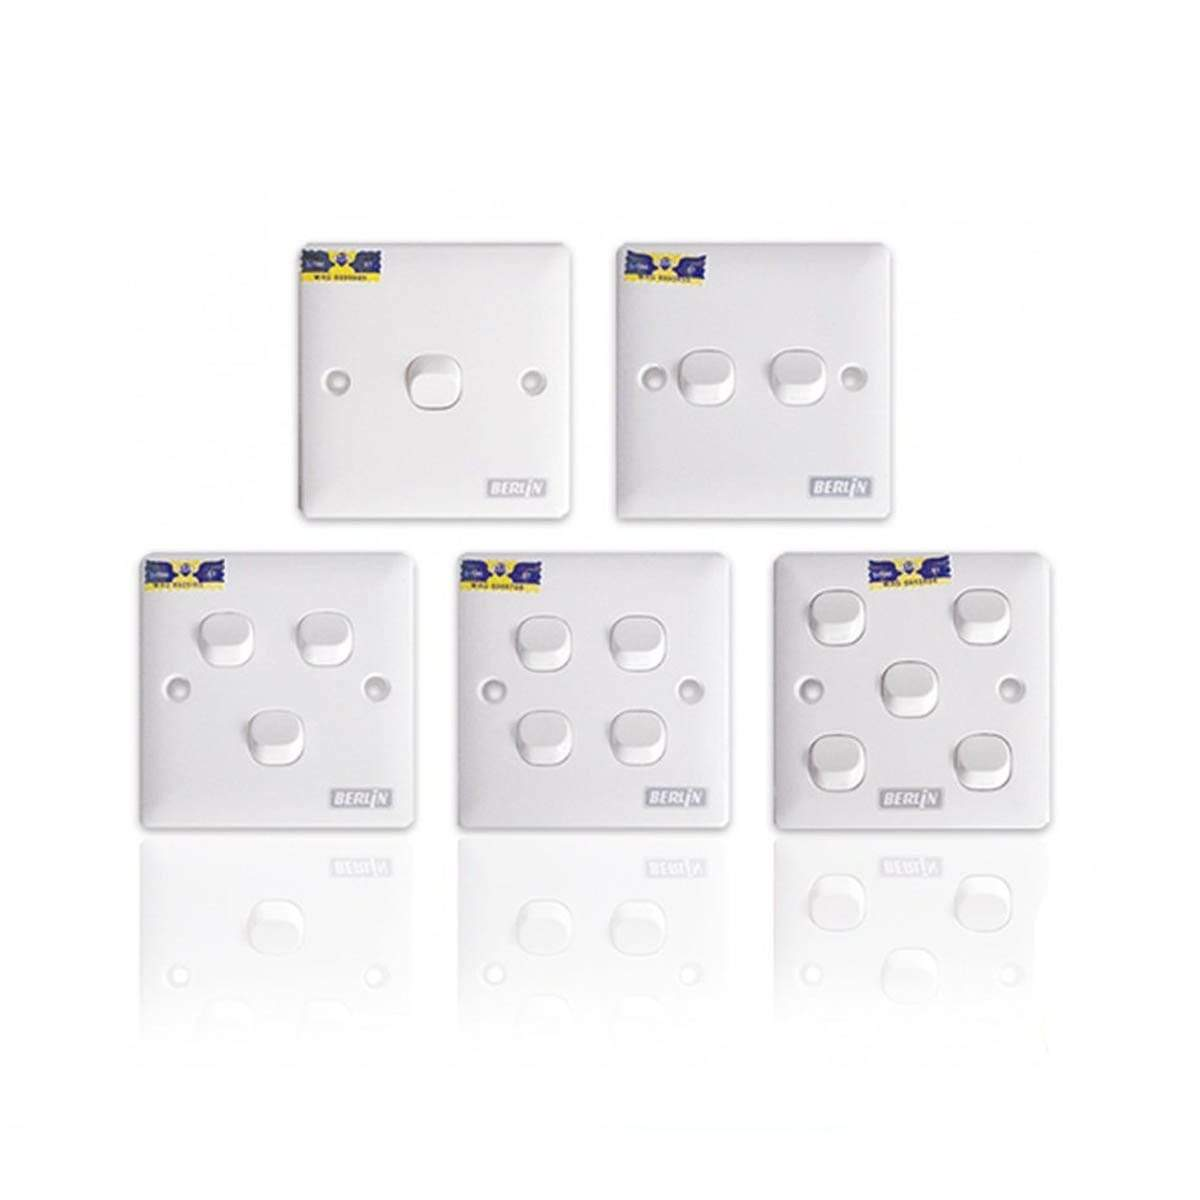 LEMAX 5 Gang 1 Way Switch S805-1